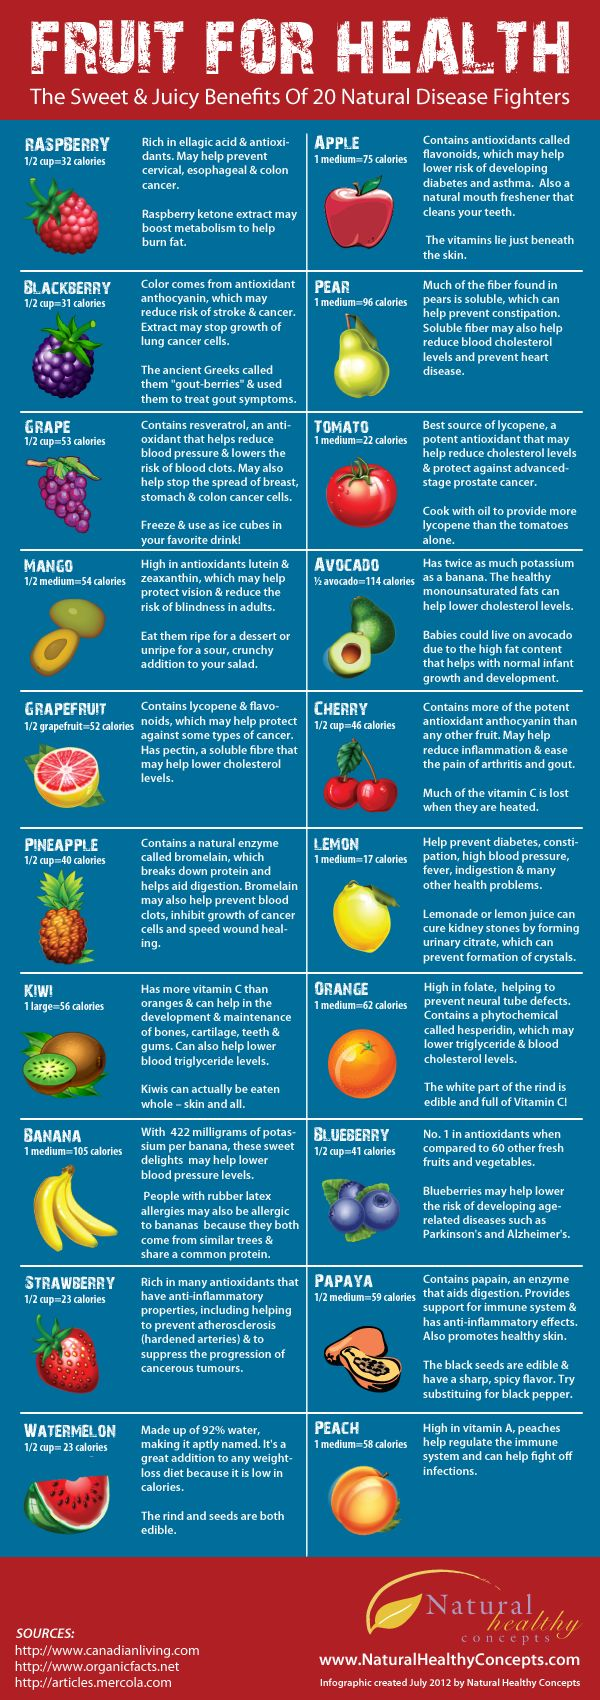 The Health Benefits of Fruit    fruit, chart, list, food, health info, interesting but i don't know if it's complete or reliable.    lj